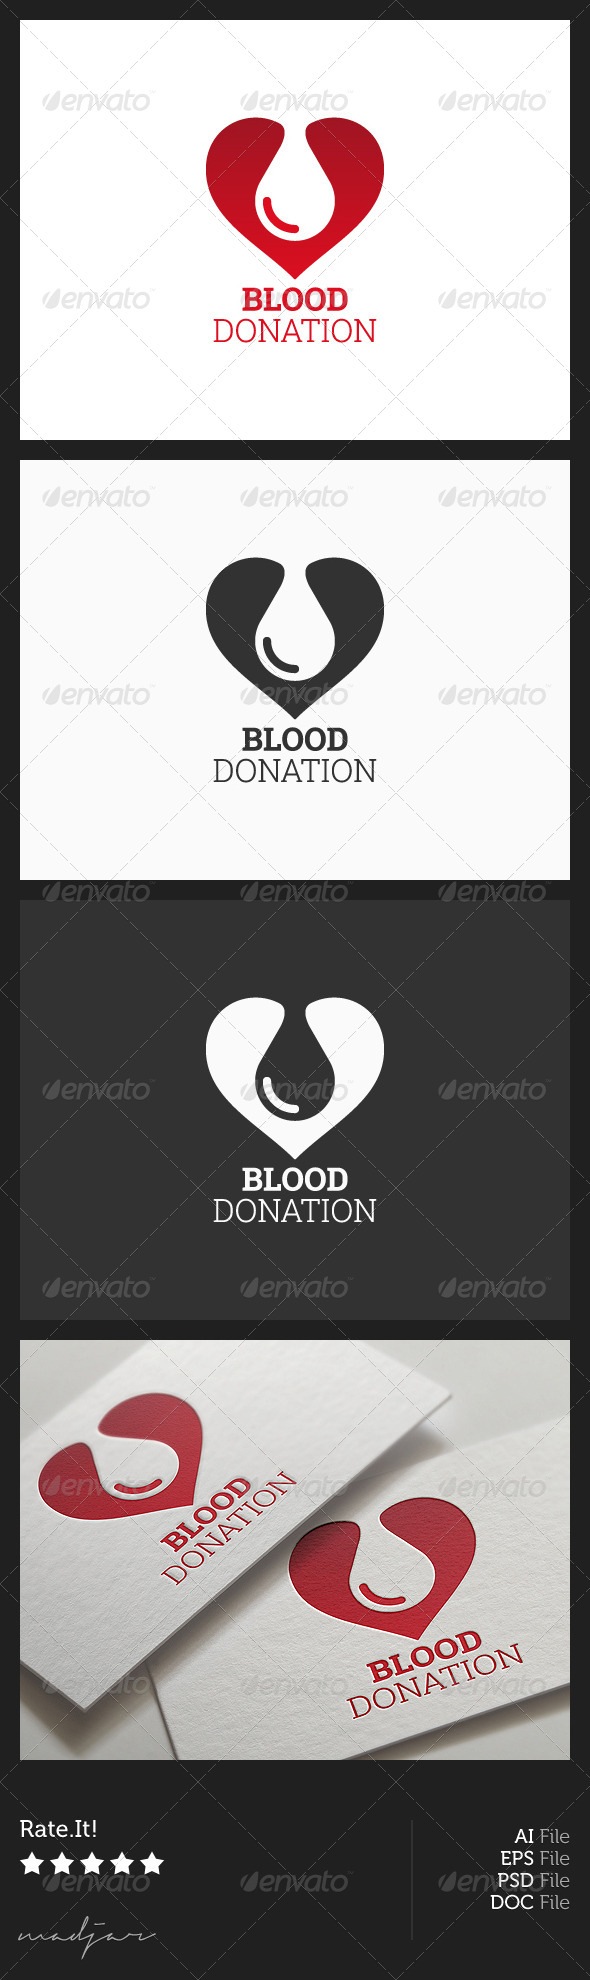 GraphicRiver Blood Donation Logo 5908392